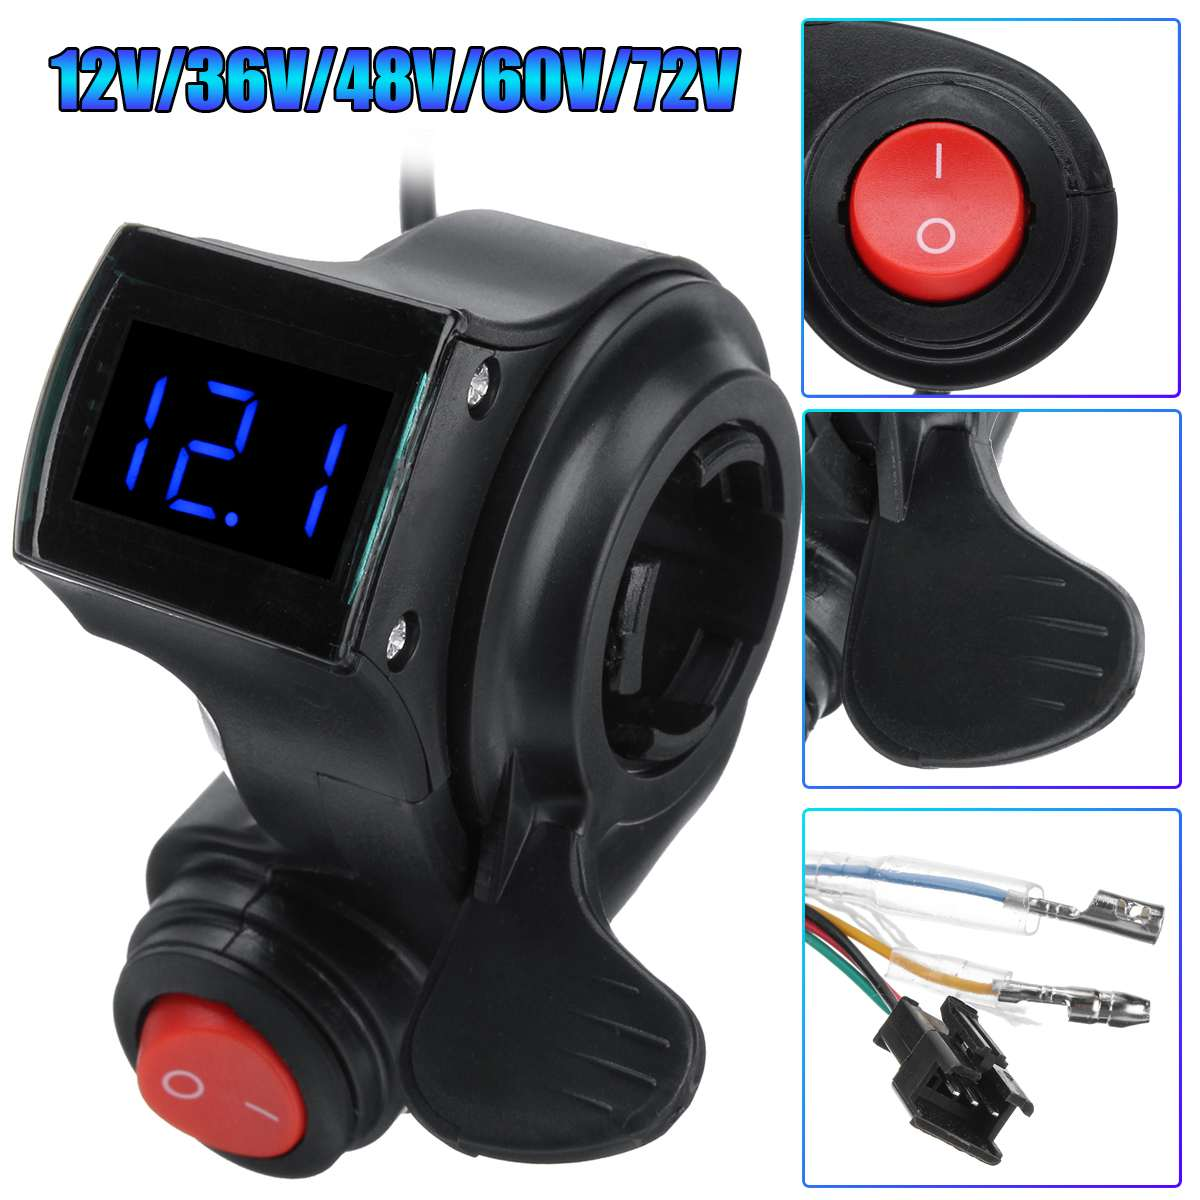 Selfless Finger Thumb Throttle Electric Scooter With Power Switch Led Display Switch Handlebar Grips For Electric Bike 36v/48/60/72v Beautiful And Charming Electric Vehicle Parts